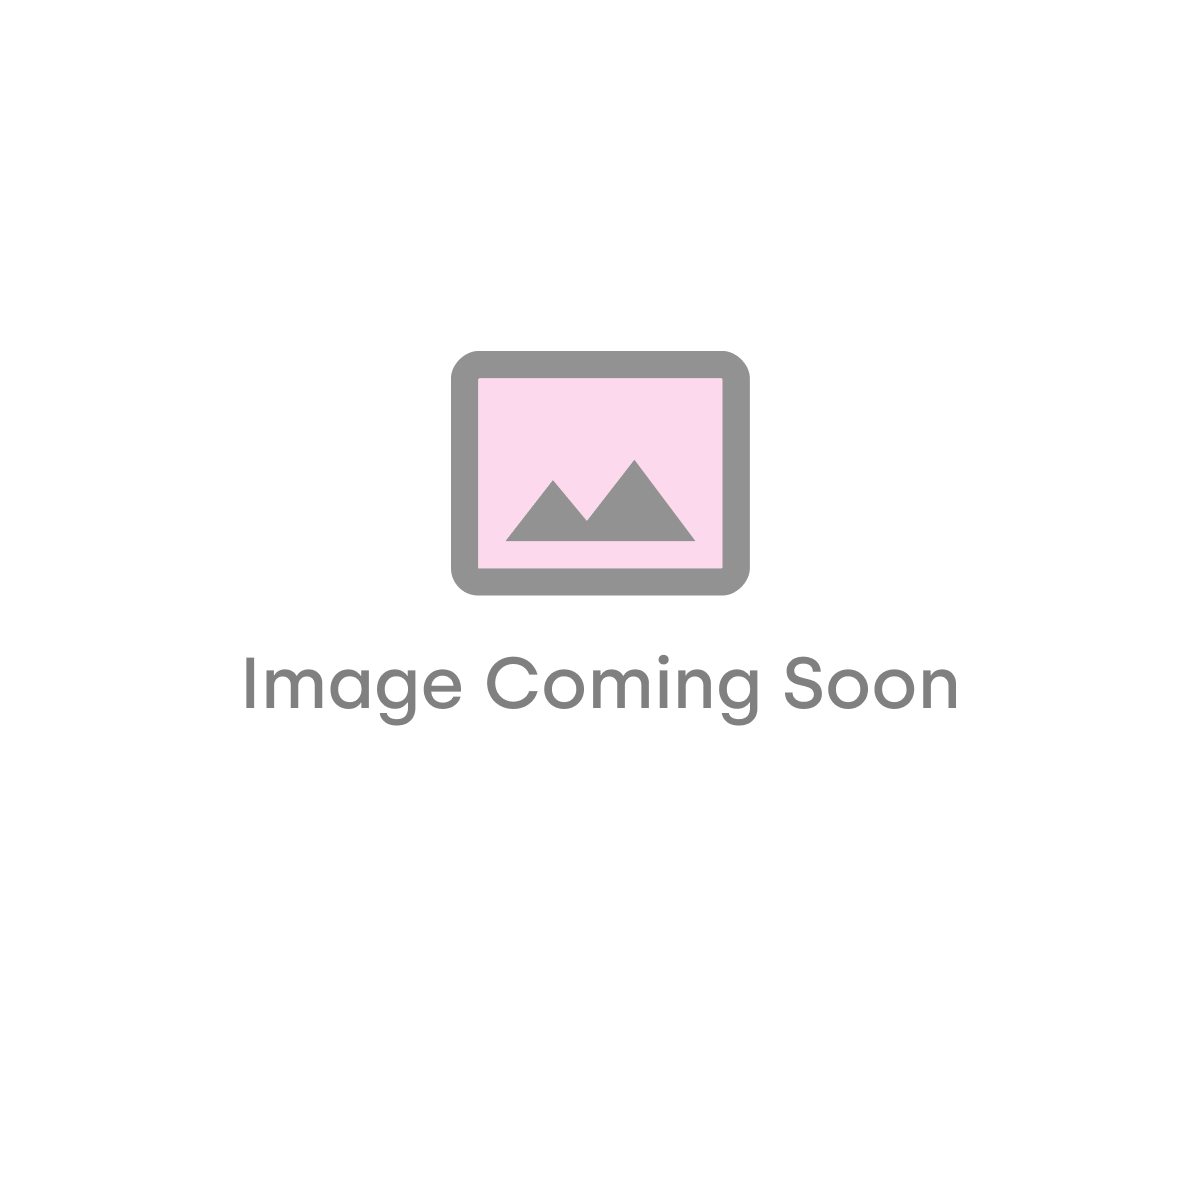 Bathe Easy Style Easy Access 1800mm Shower Bath, Screen & Panels  - Left Hand (14954)